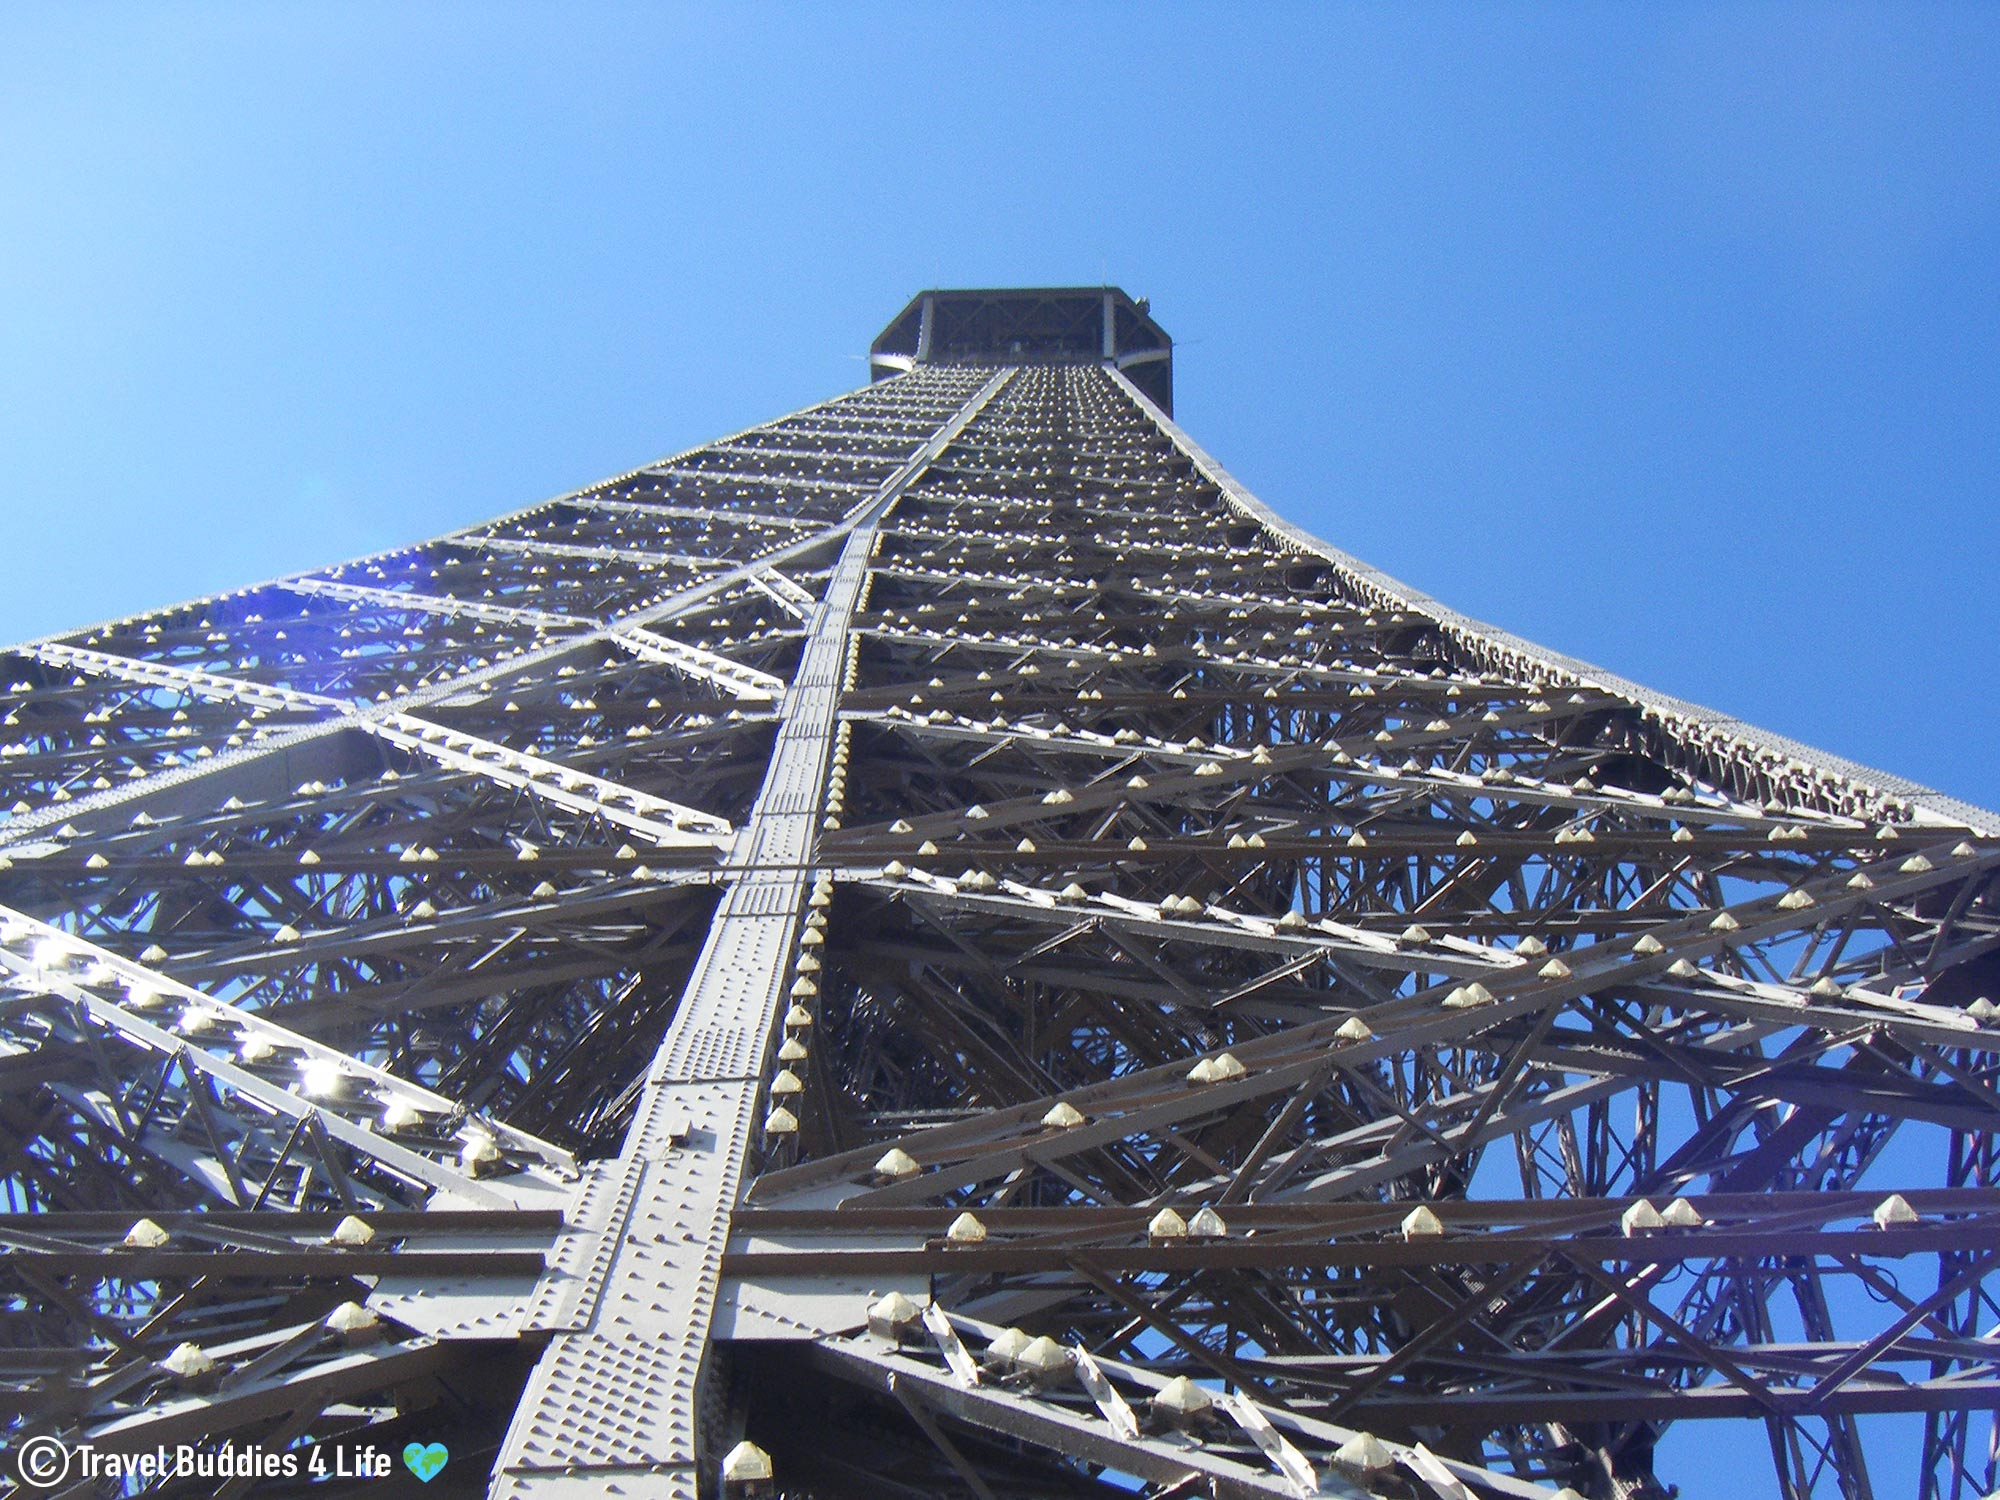 Looking Up The Metal Lattice Of The Eiffel Tower, Paris, France